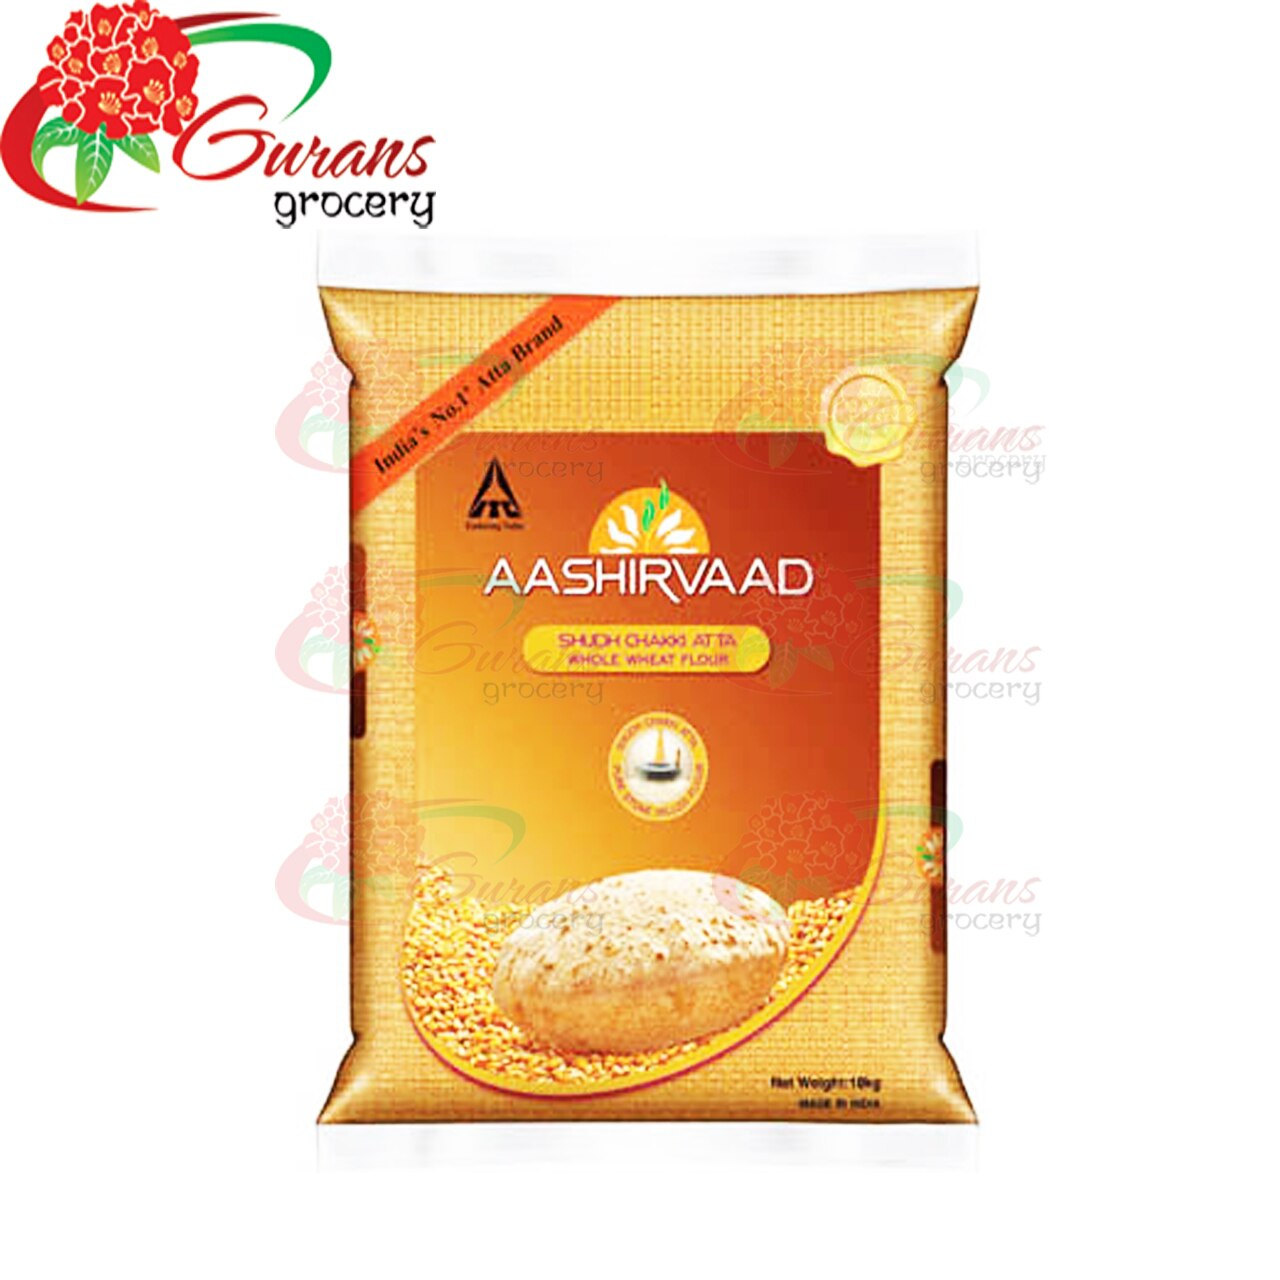 Aashirvaad Whole meal Atta 10kg